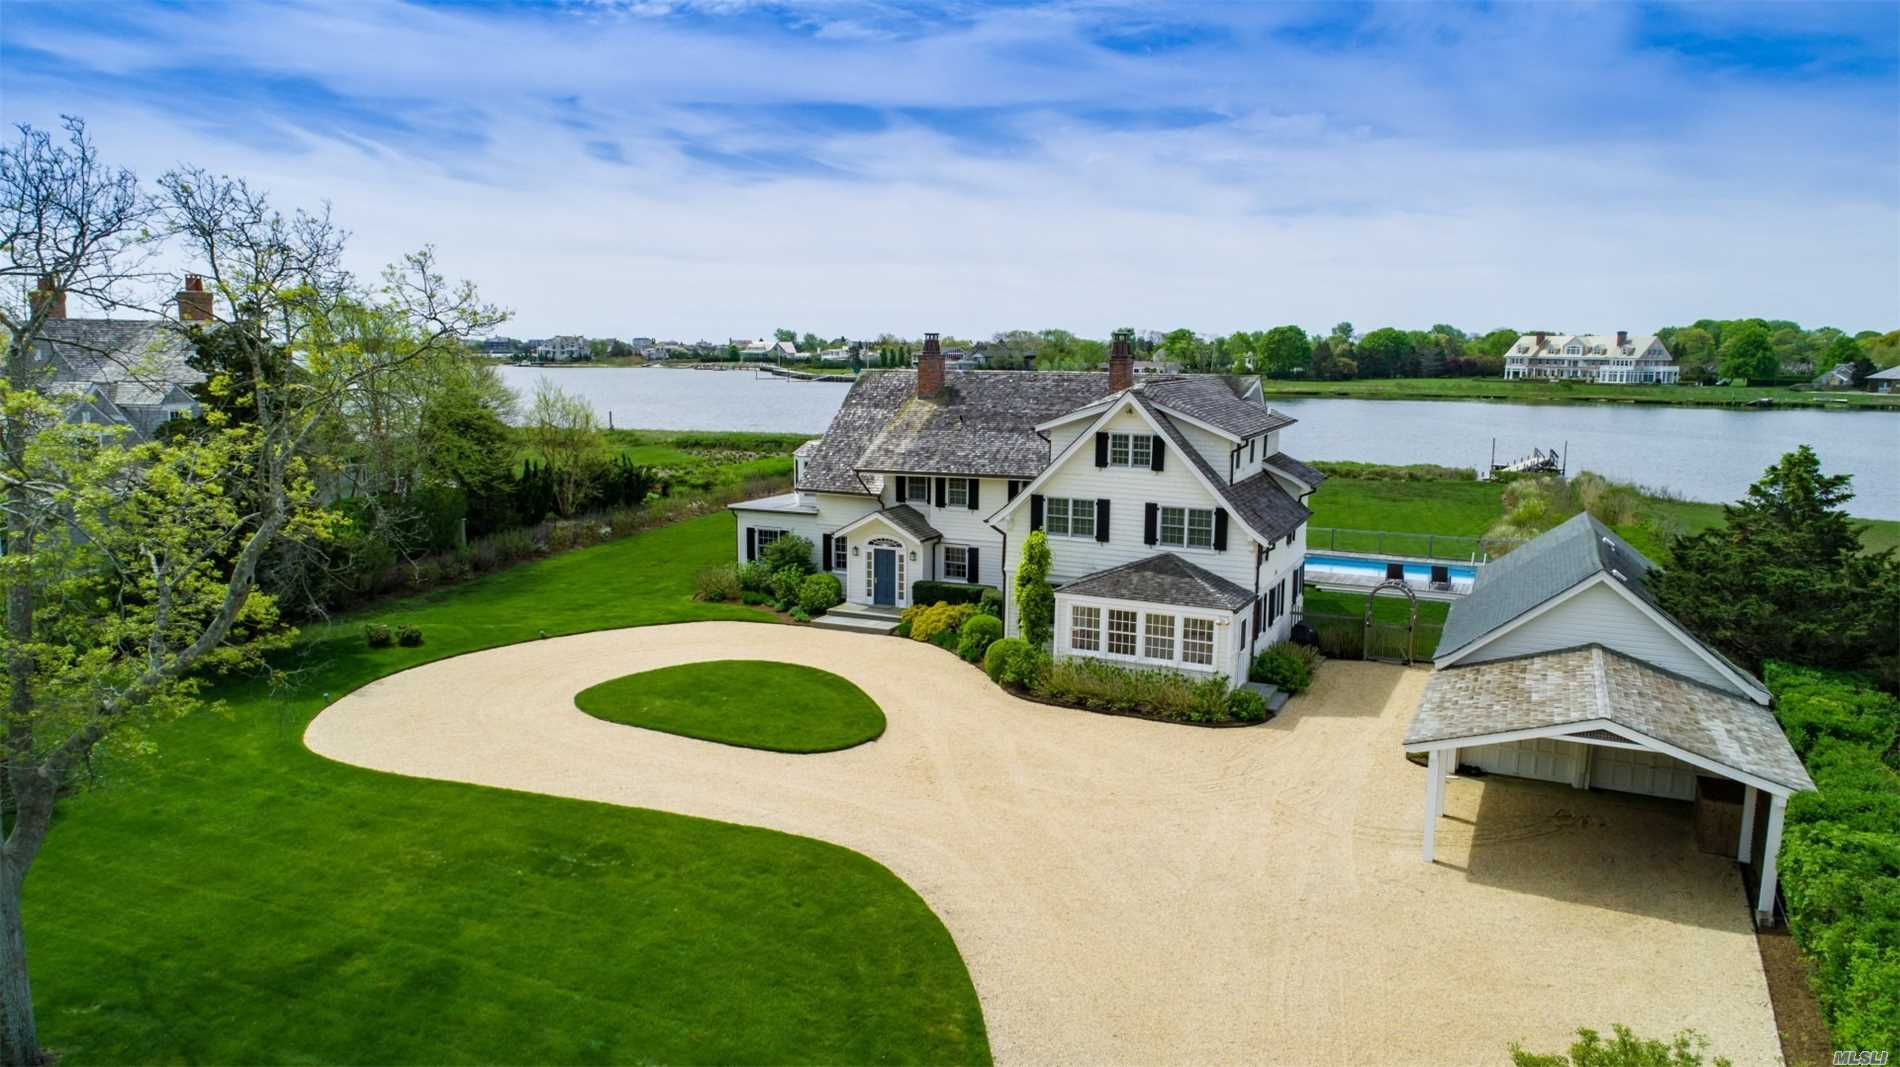 This Beautifully Renovated Traditional Hamptons Waterfront Home Is Now Available. Located In The Desirable Quiogue Area Of Westhapton, This Home Boasts Endless Water Views And Glorious Sunsets The 1.5 Acre Estate Has Been Meticulously Renovated To Preserve The Original, Classic Design Details, Updated To Accommodate Today's Lifestyles. Heated Pool, Detached Garage And Floating Dock.